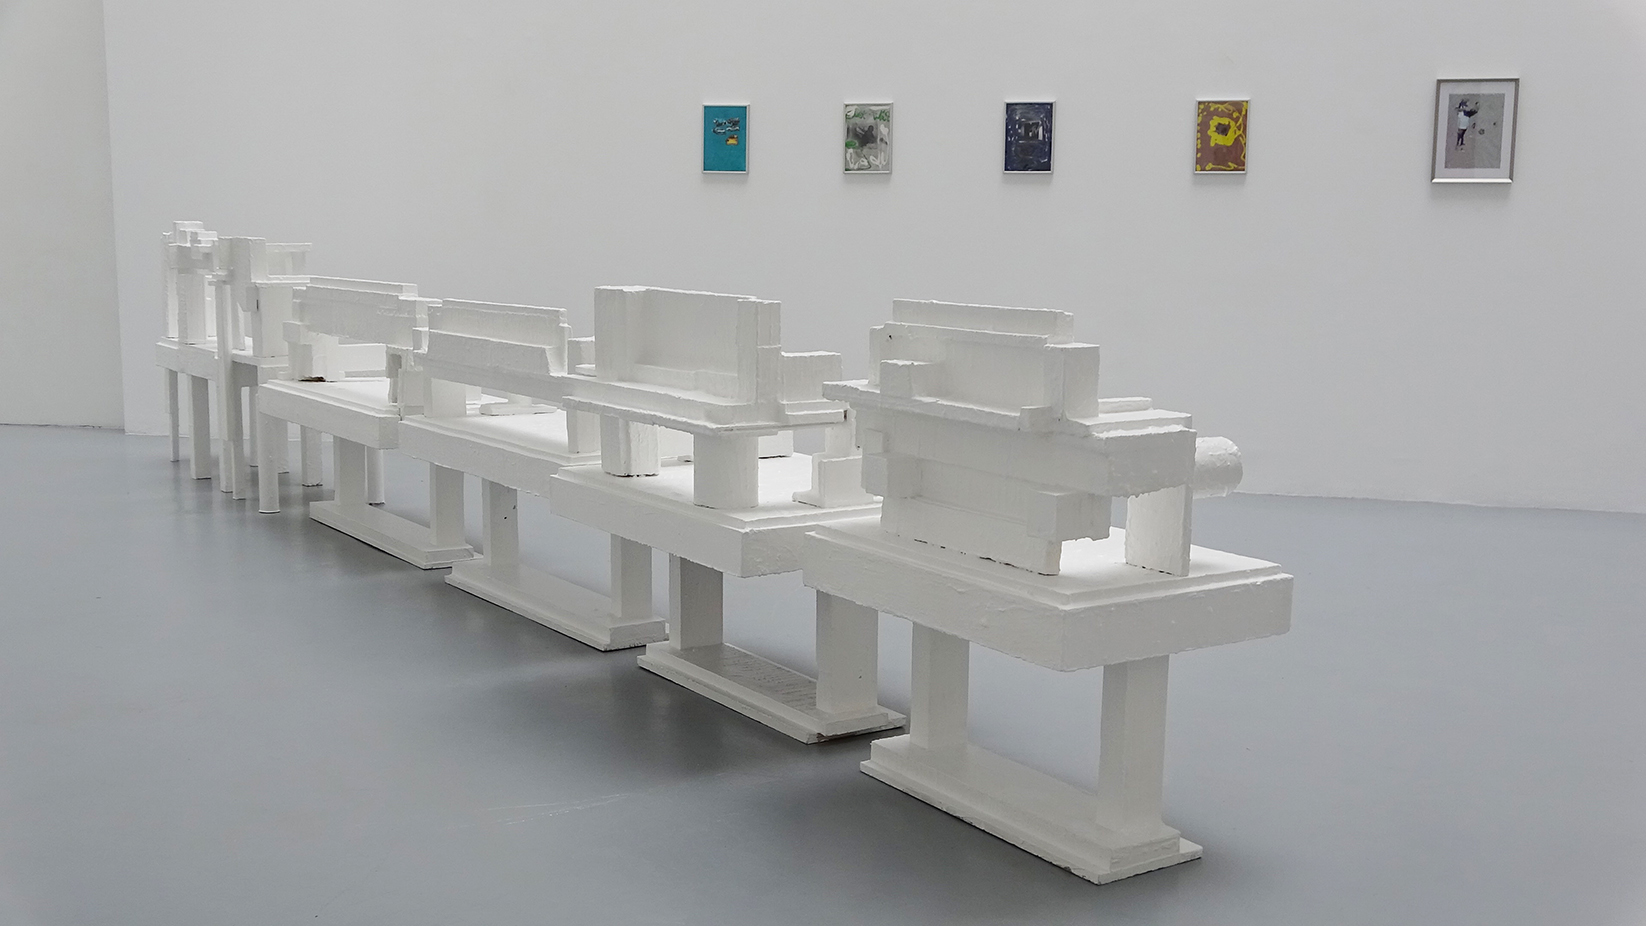 New models, Denis ColletPark, 2015, bois, peinture, dimensions variable selon installation — Galerie Éric Hussenot, Paris